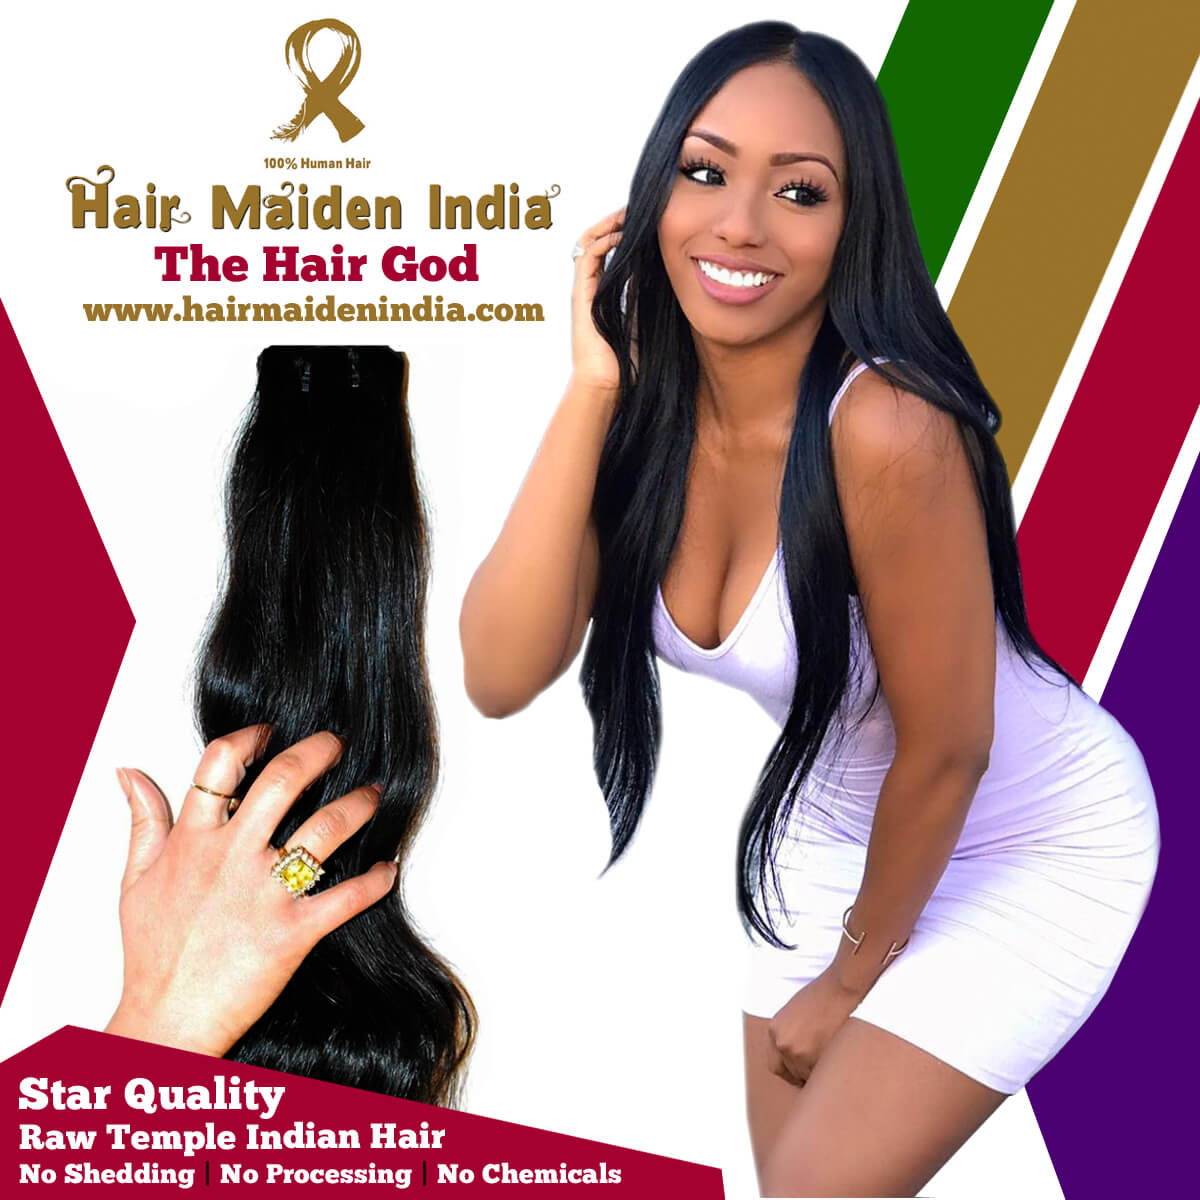 Hair extensions from India